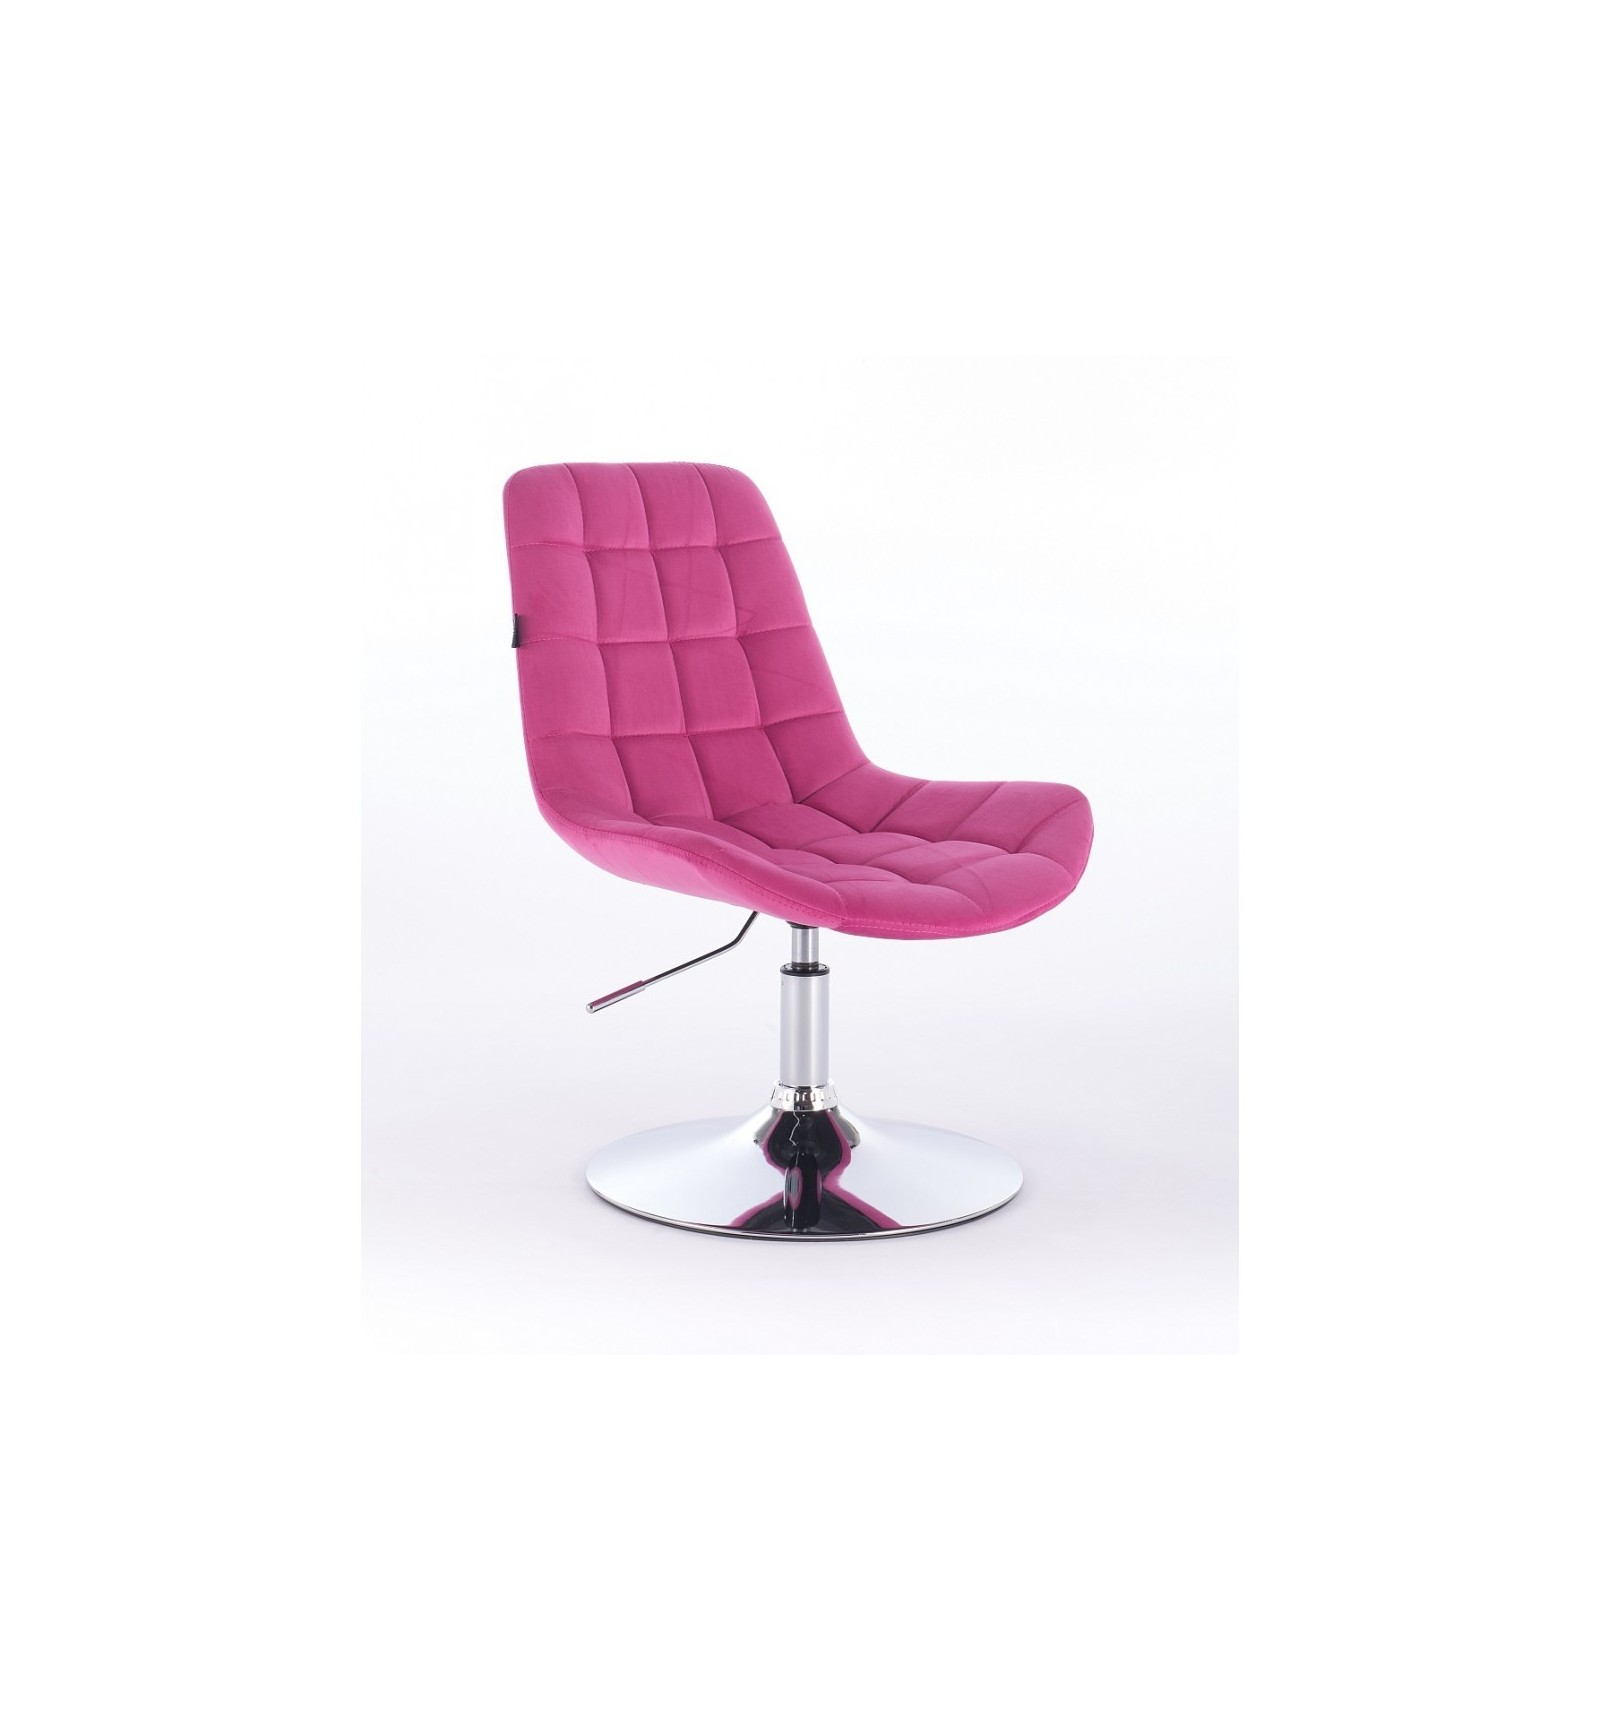 Hroove Salon Chair Pink Bella Furniture Ireland 590n